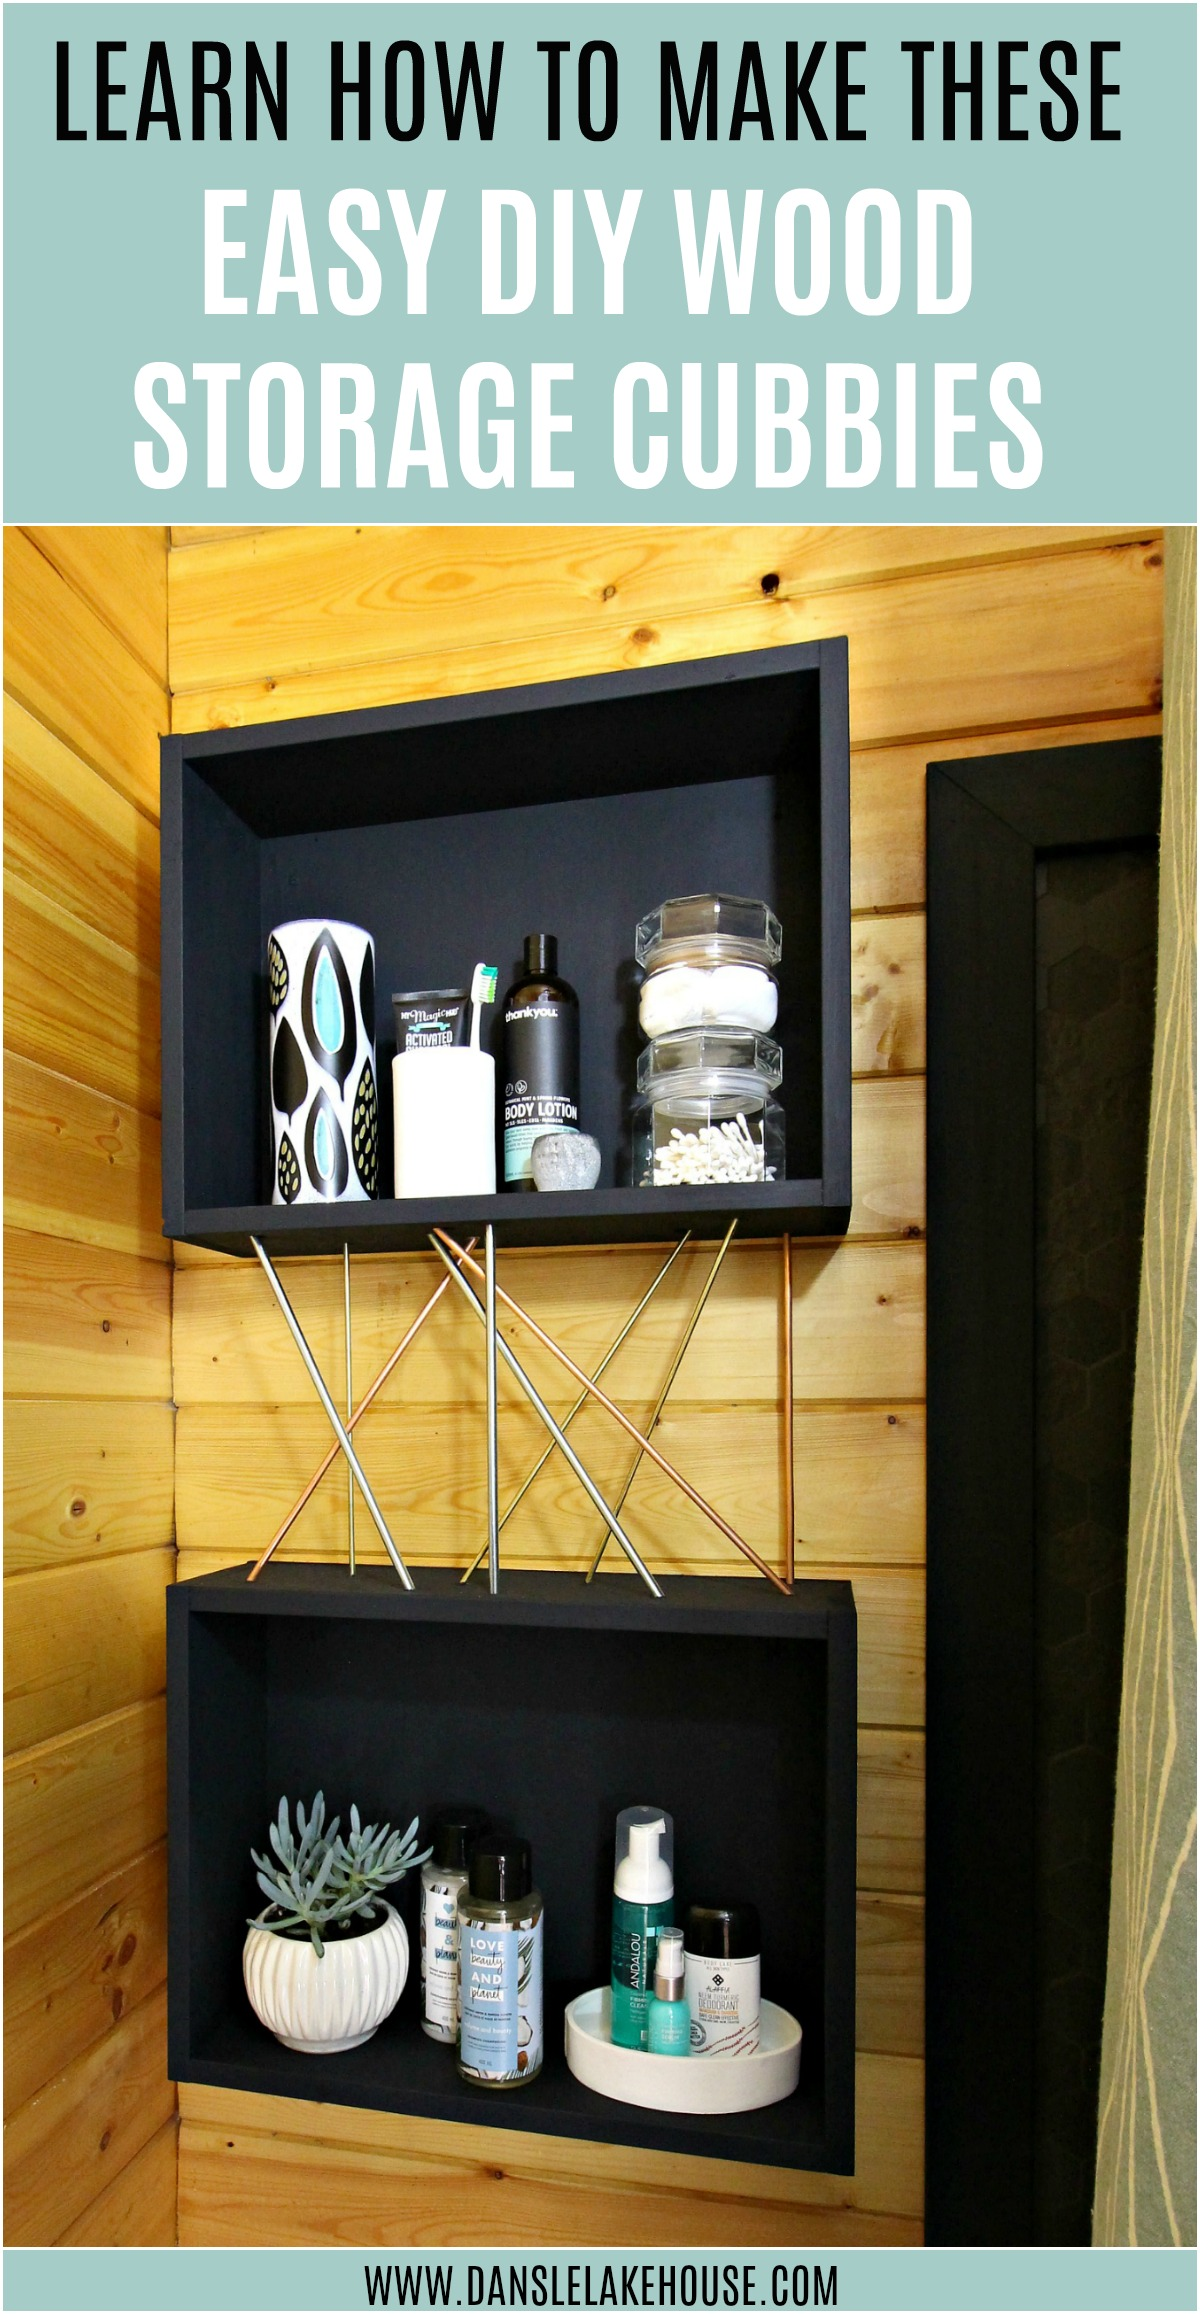 DIY Wood Storage Cubbies with Mid-Century Modern Inspired Metal Details